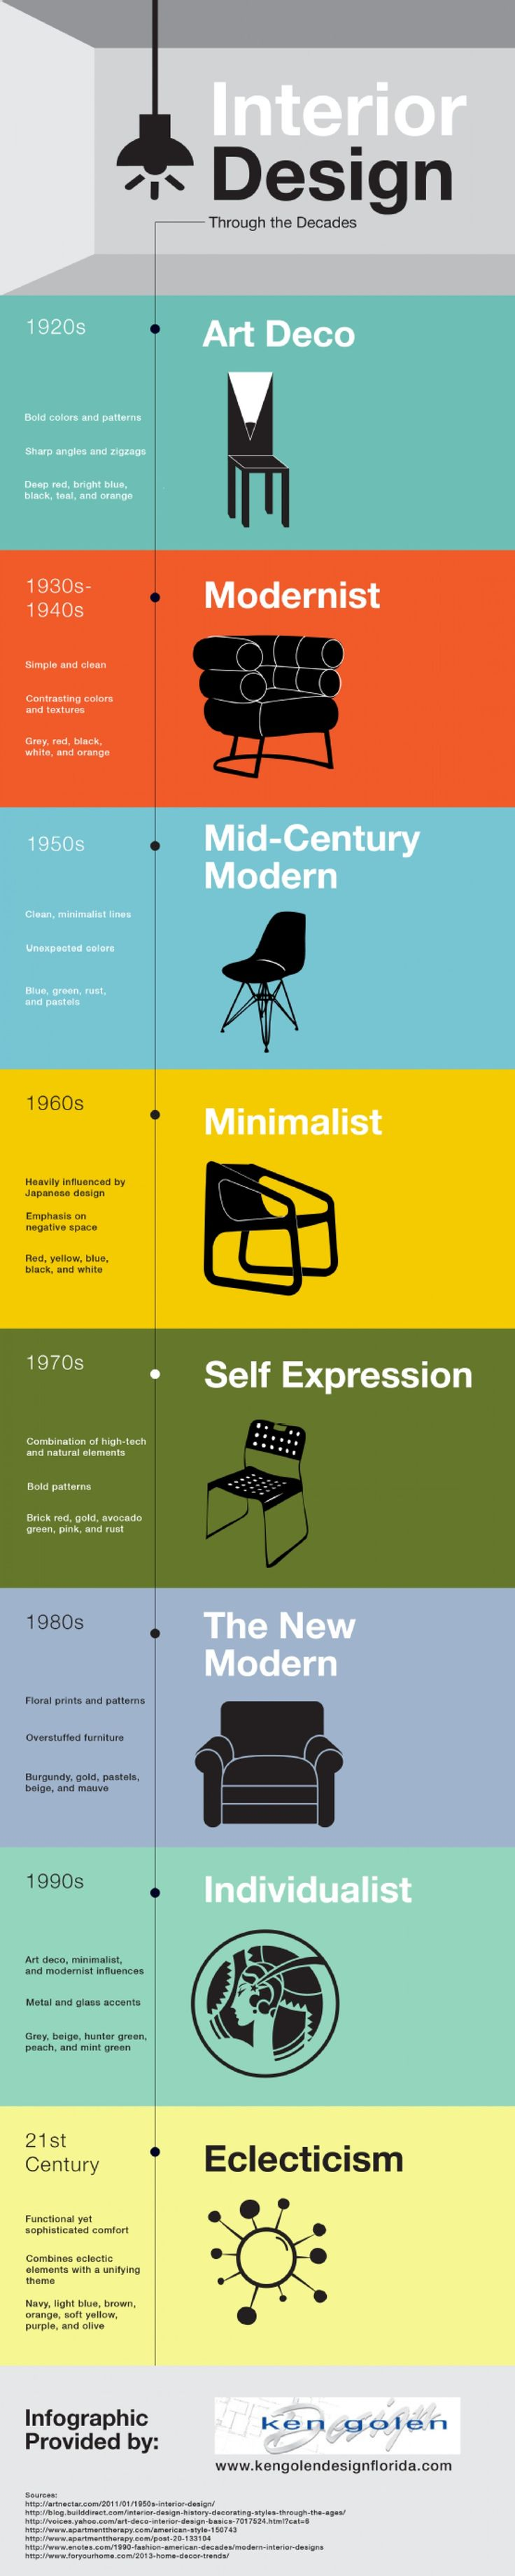 Permalink to Infographic: Interior design through the decades. What style do you like best?…